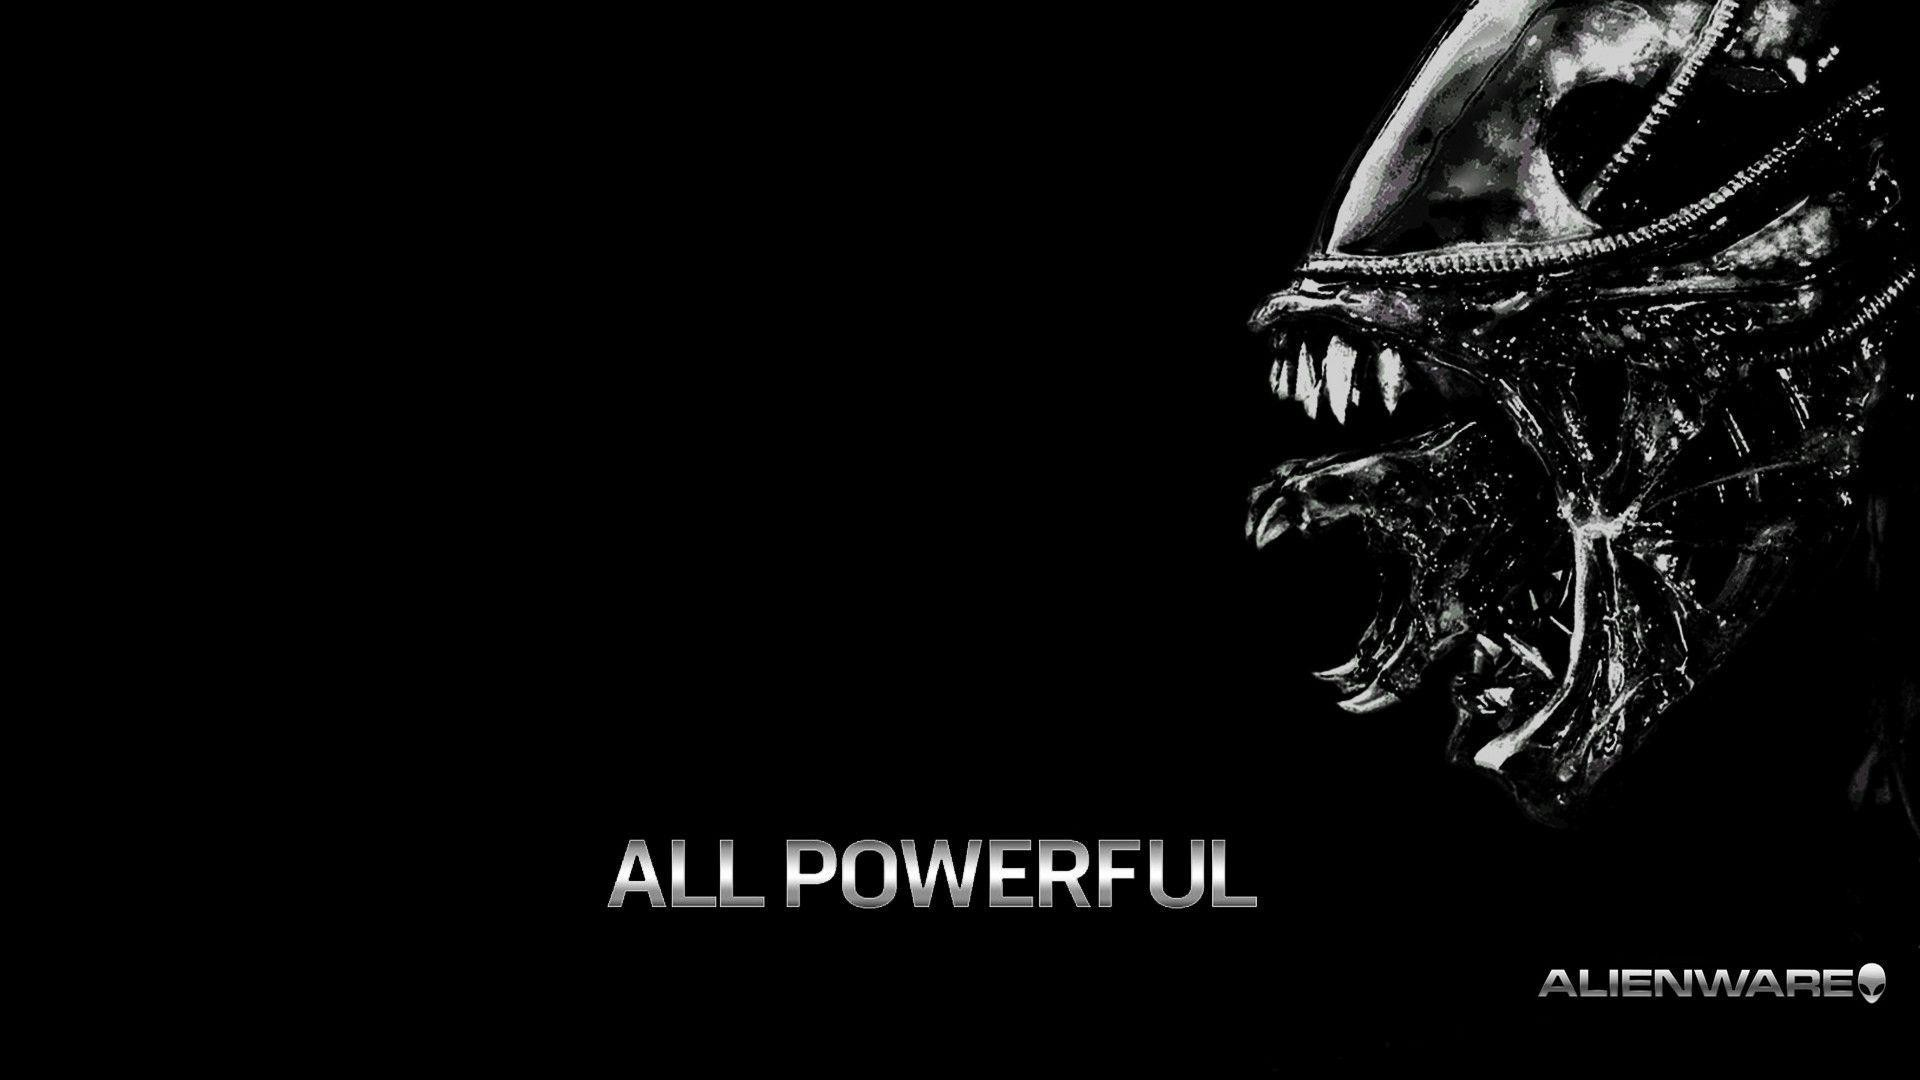 Alienware red wallpaper 74 images 1920x1200 the 25 best alienware wallpaper ideas on pinterest alienware alienware hd wallpaper and hd wallpapers pc voltagebd Images